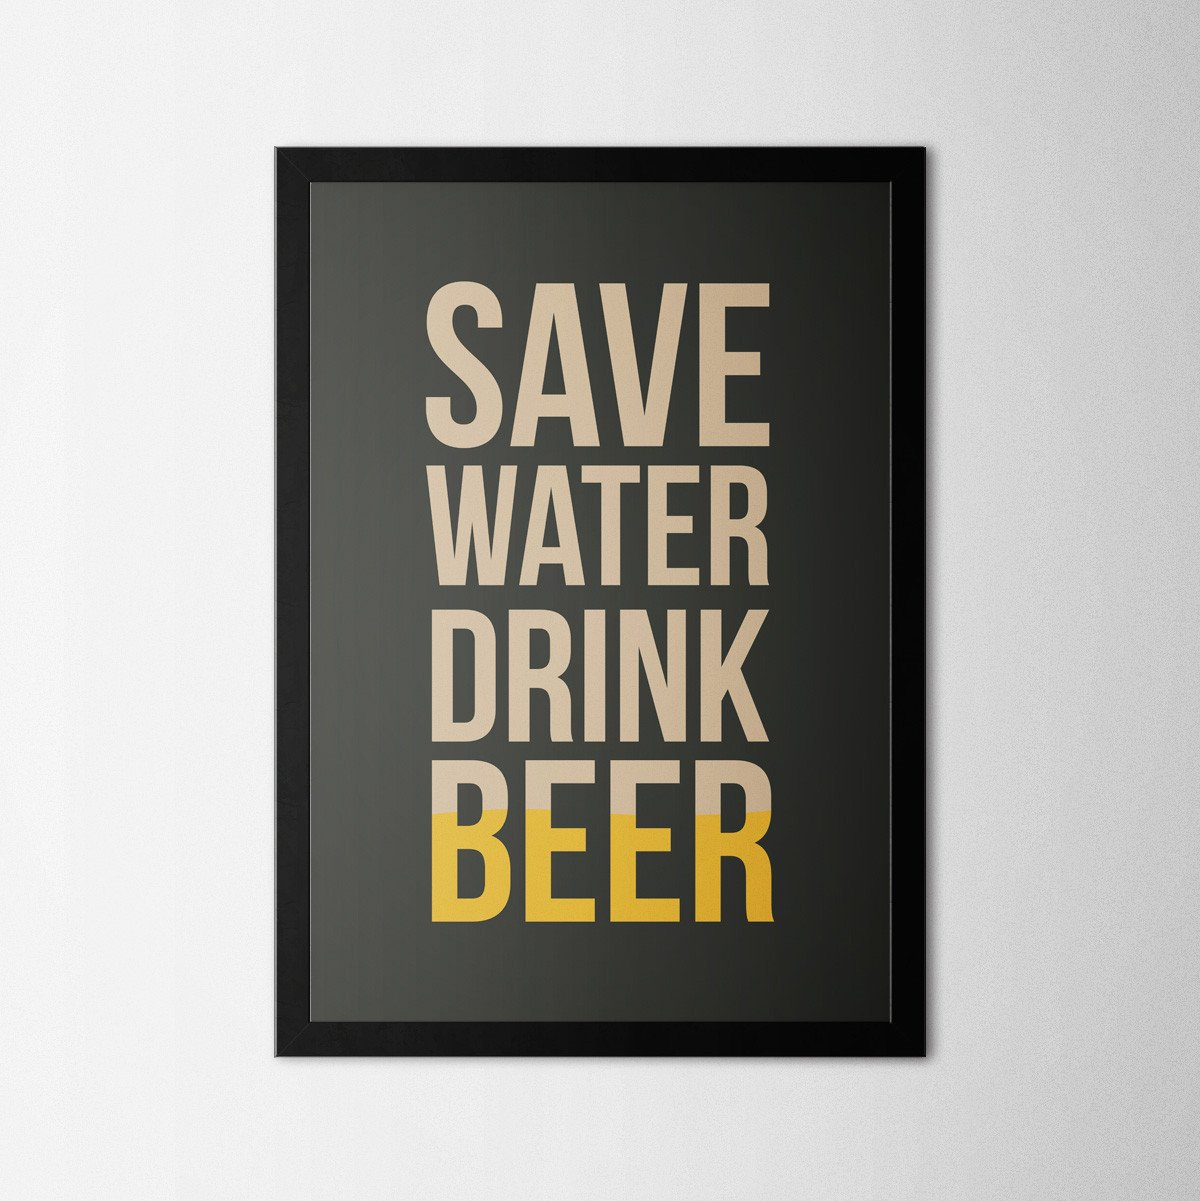 Drink Beer - Northshire Art Prints - Poster - Dekorasyon